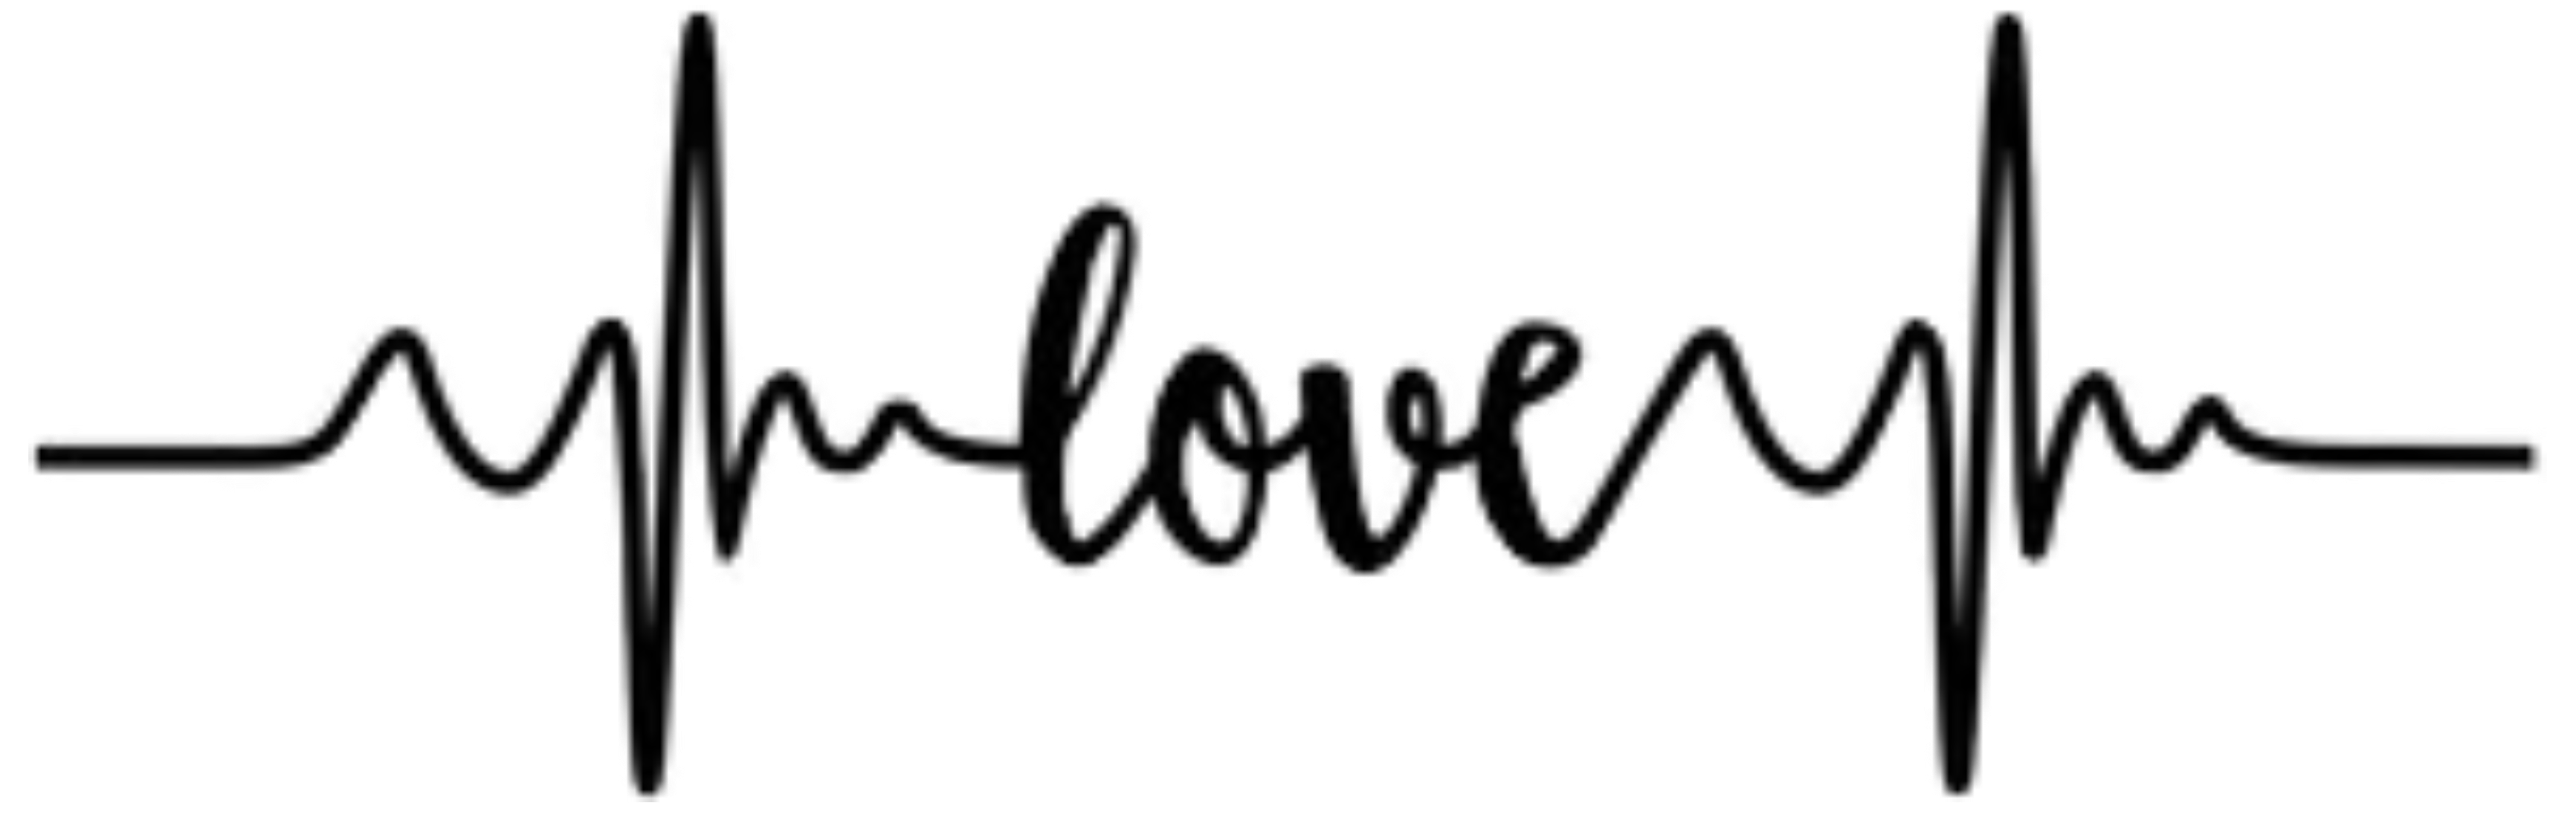 Freetoedit Love Heartbeat Remixed From Lily Scott19 Heartbeat Tattoo With Name Name Tattoos Heartbeat Tattoo